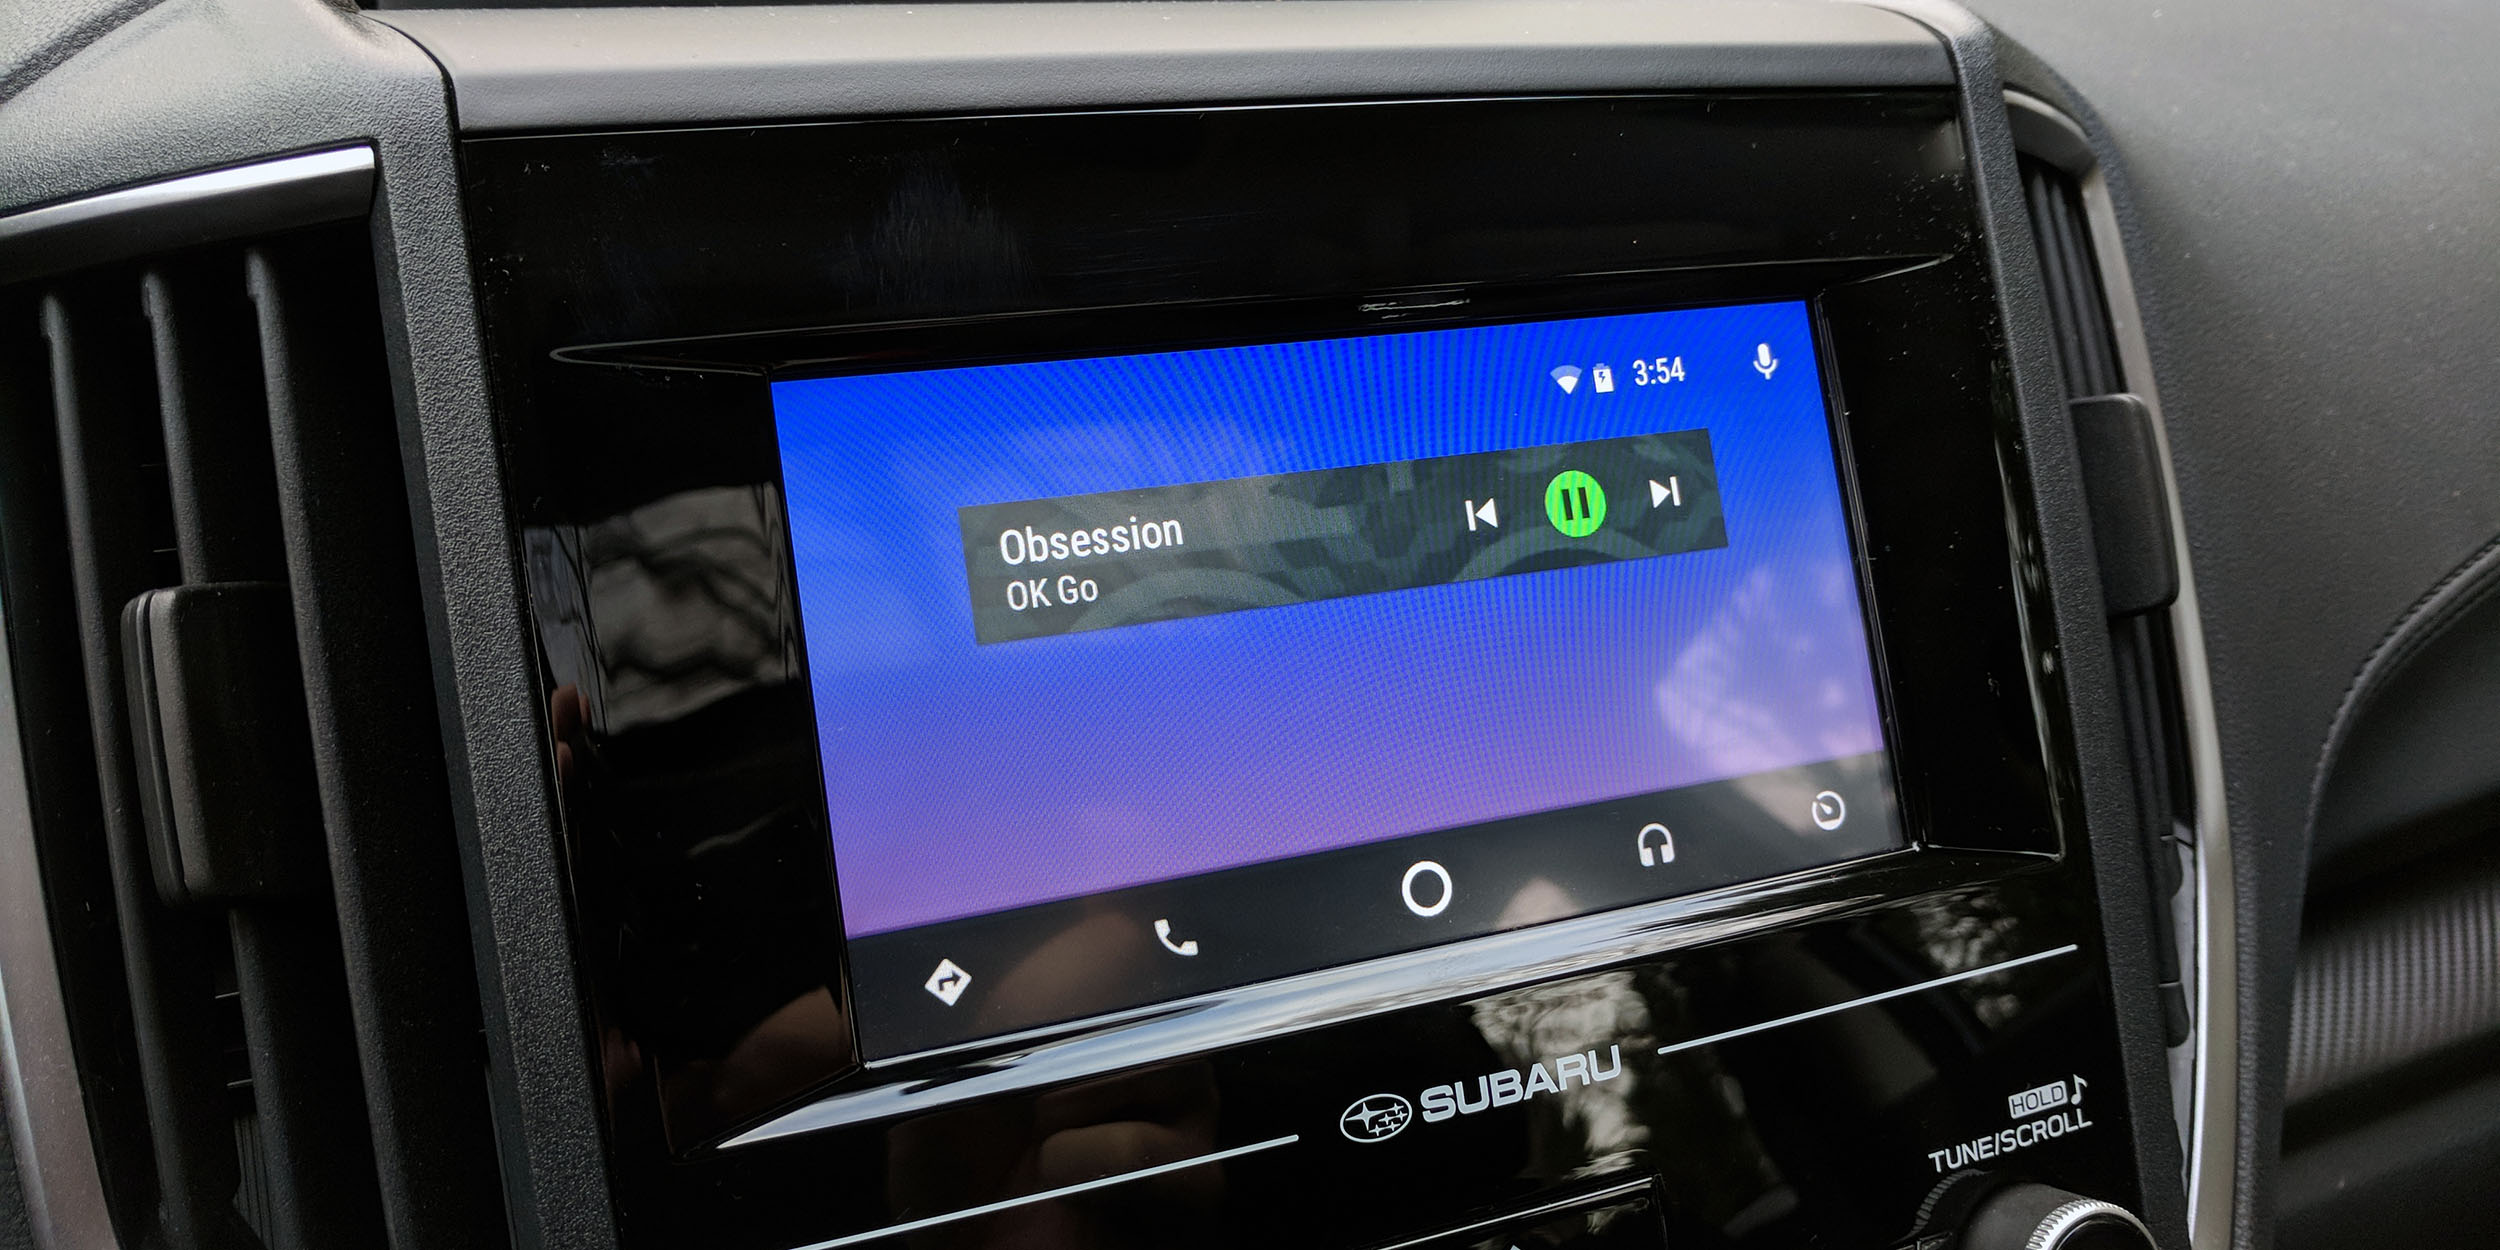 android auto is now supported on over 500 cars and head units